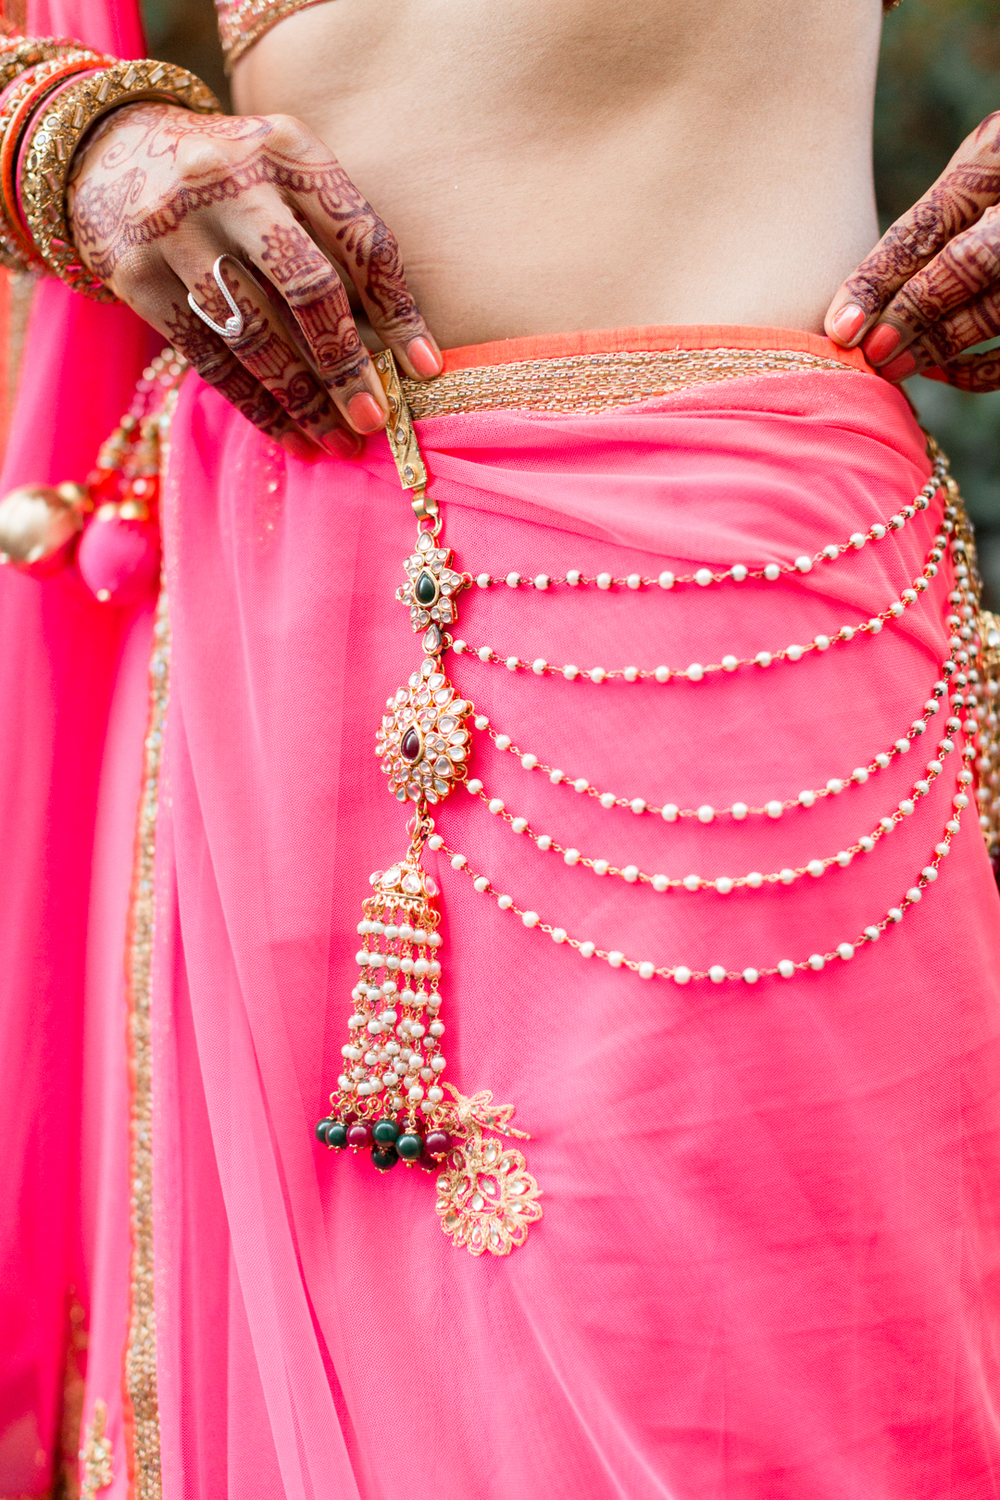 CourtneyPaige_WeddingPhotography_Nagjee-98.jpg